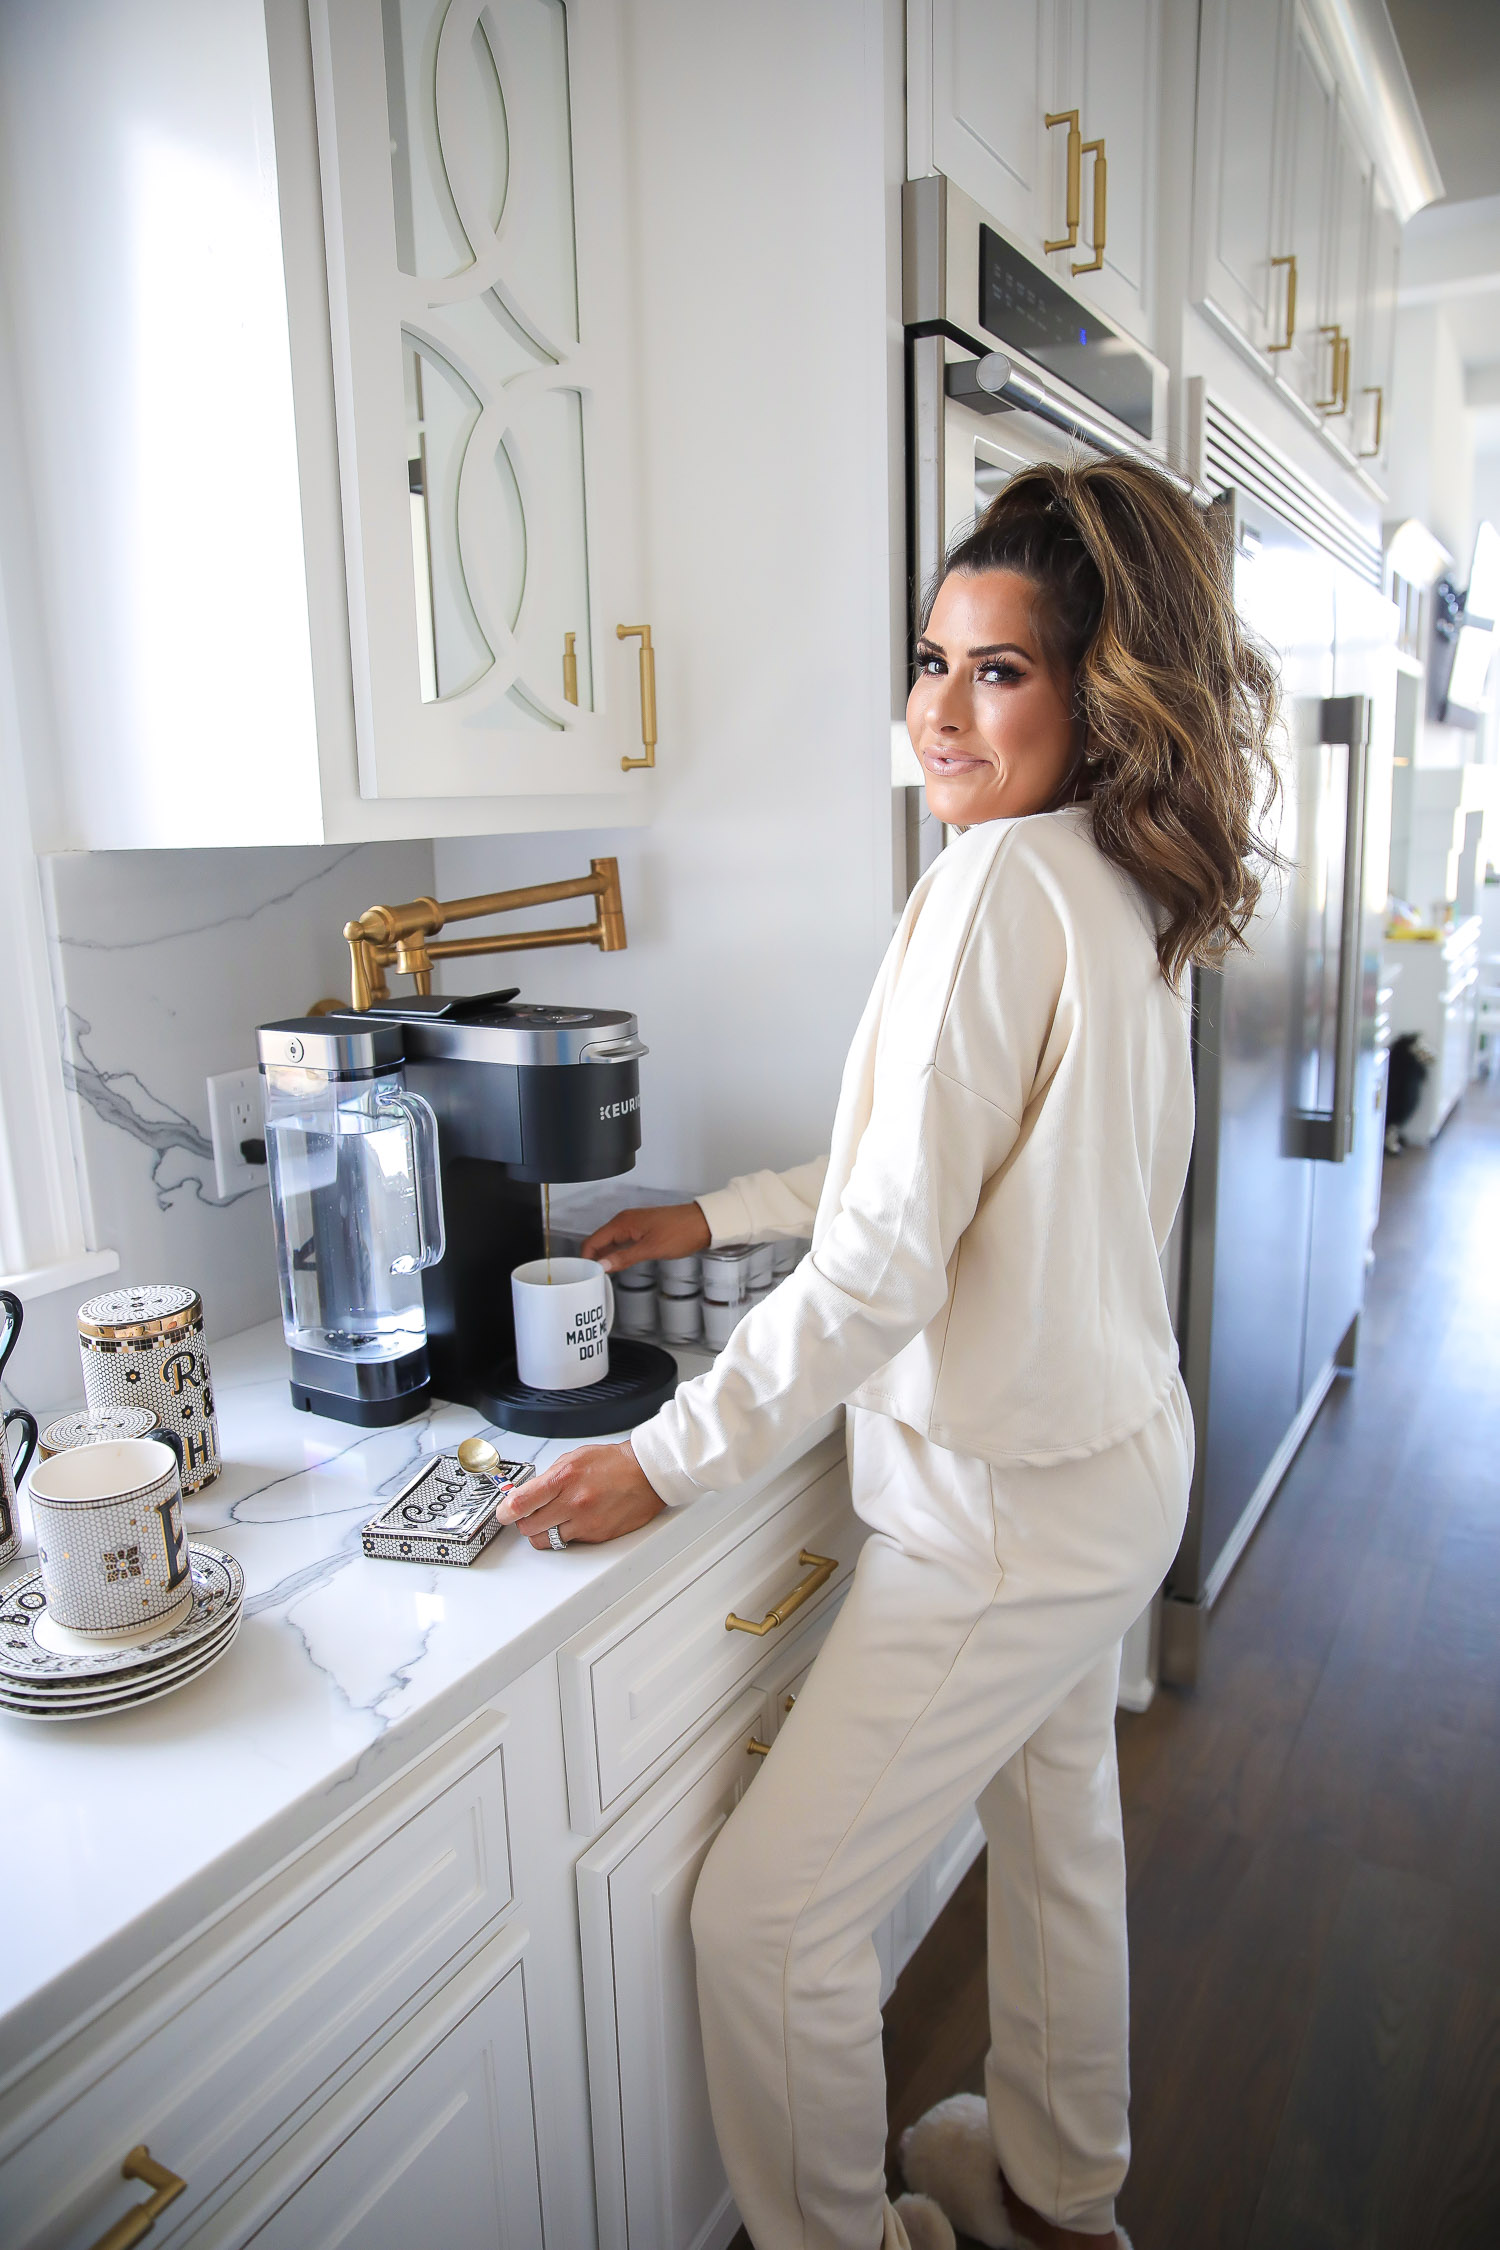 hum nutrition daily cleanse supplements, skin clearing vitamins, green algae vitamins, emily gemma skincare routine | Hum Daily Cleanse by popular US lifestyle blog, The Sweetest Thing: image of a woman wearing a cream colored lounge set and getting herself a cup of coffee from her coffee maker.